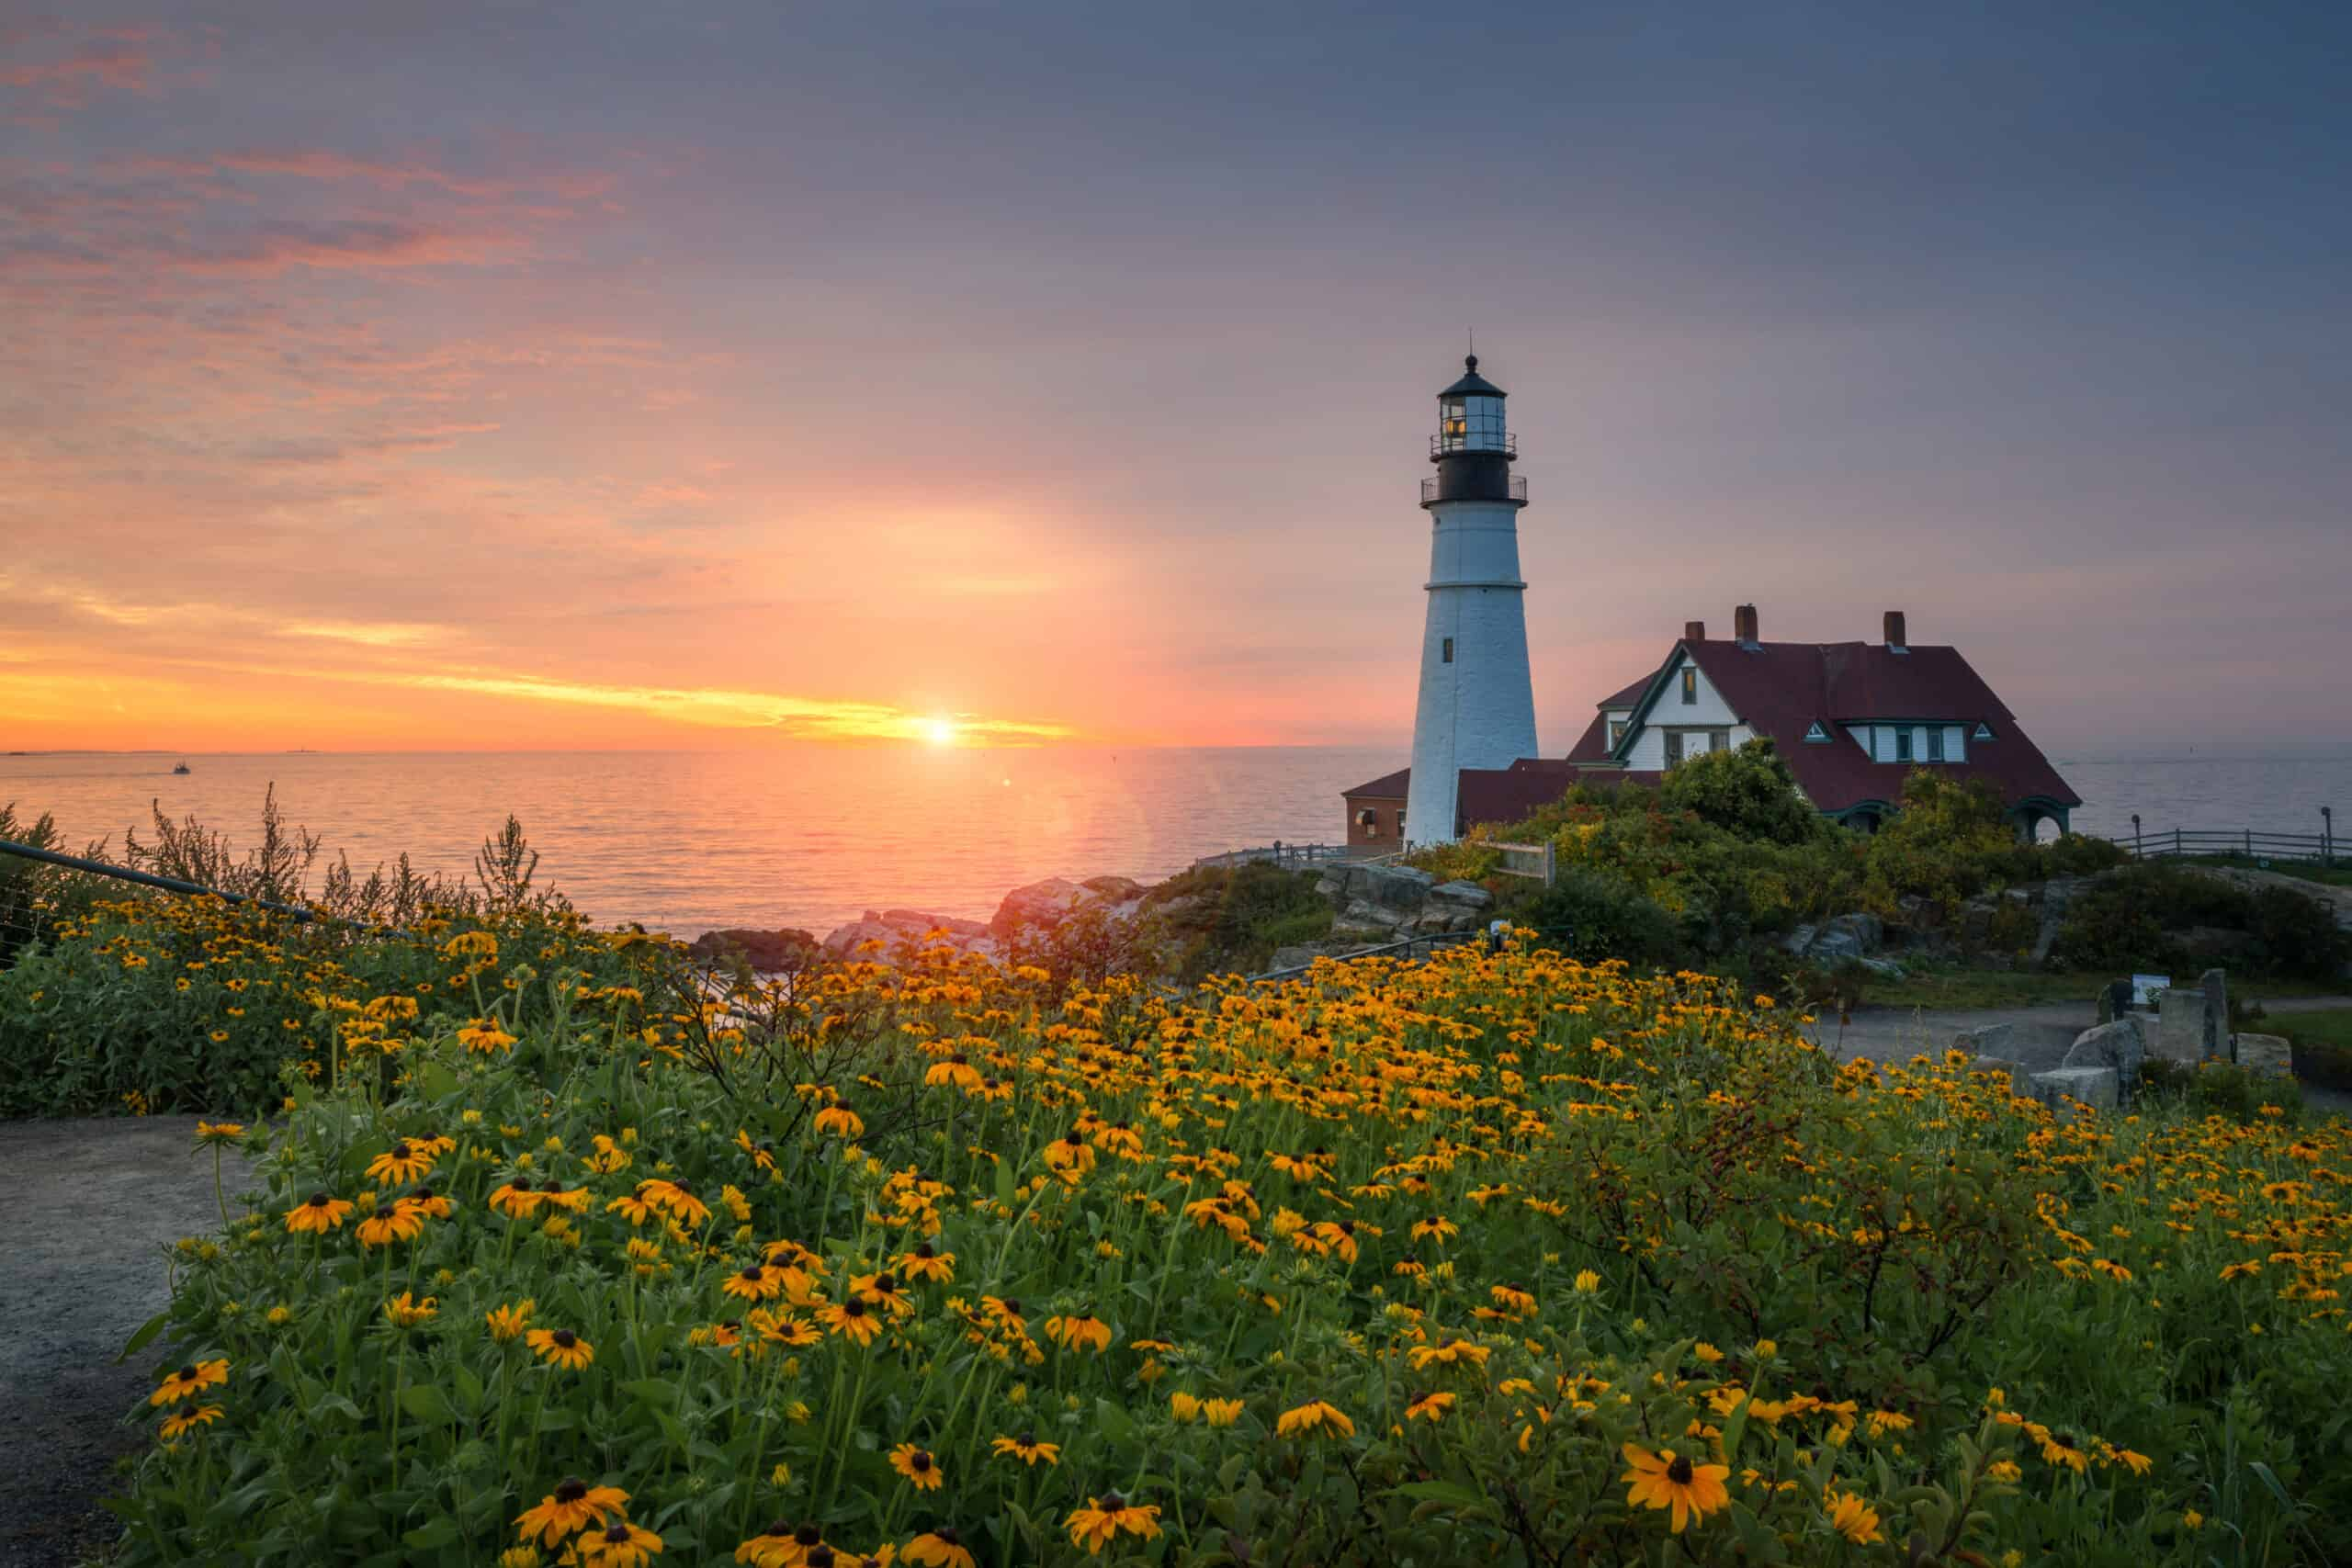 lighthouses in portland maine - image of portland head lighthouse, a classic lighthouse on maine coast at sunrise with yellow wildflowers in the foreground